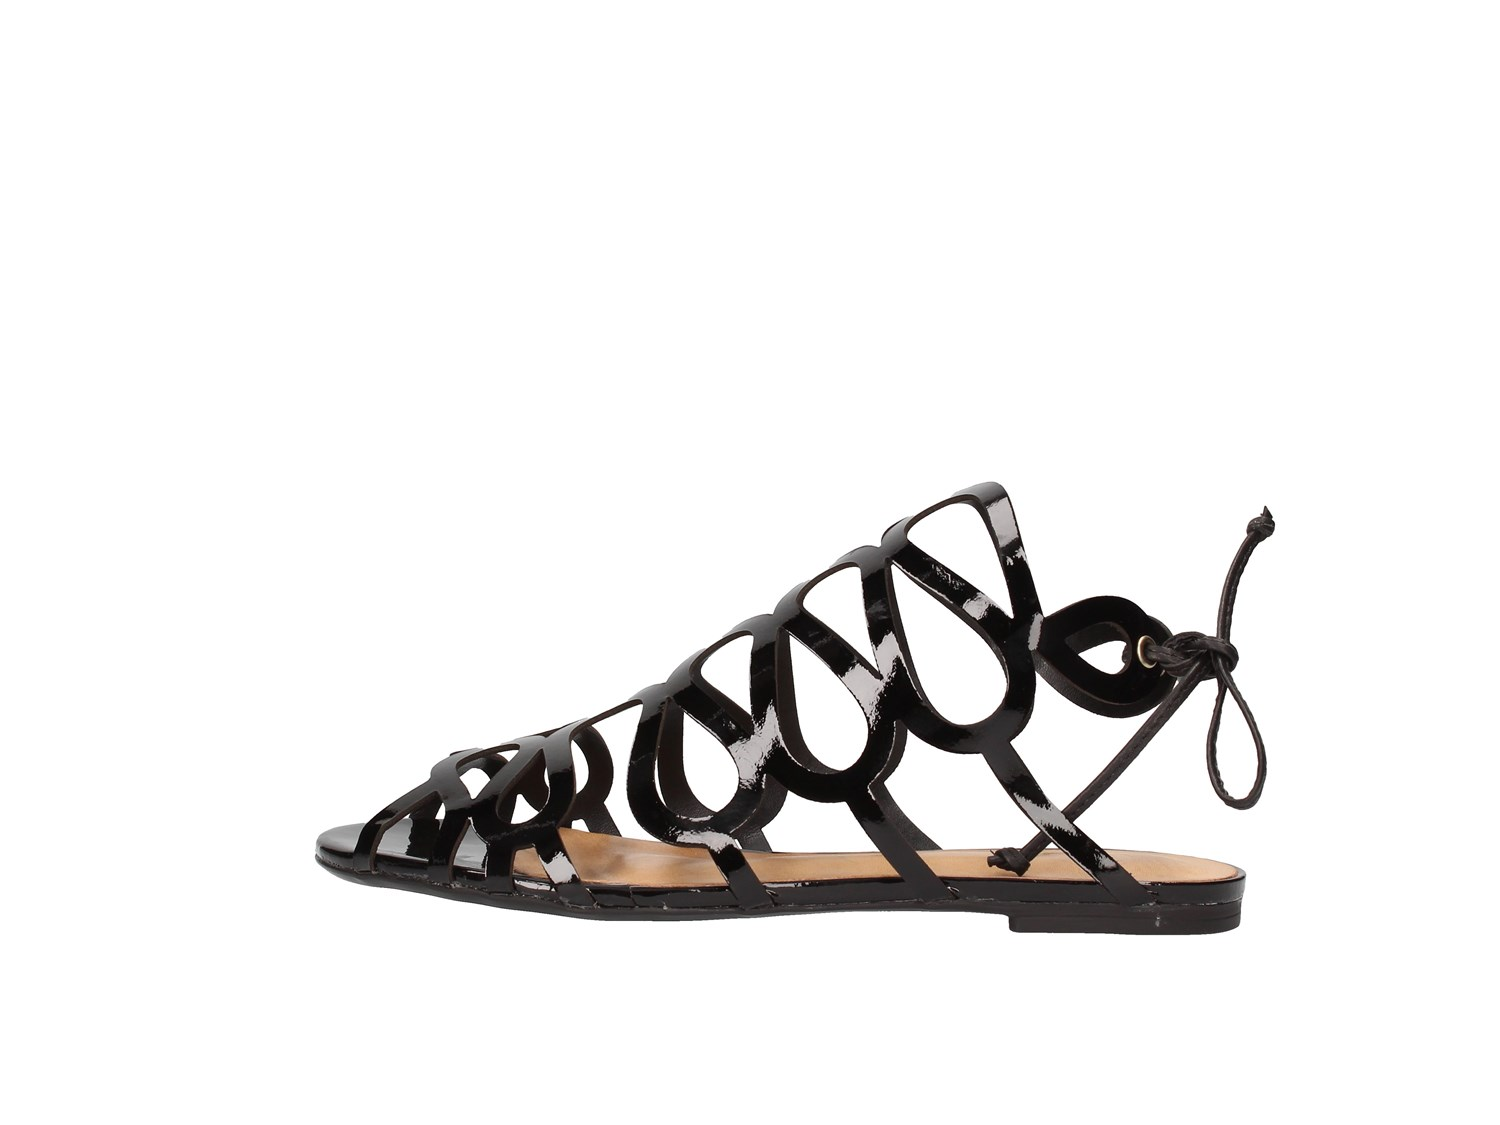 Vicenza 122047 Senegal Black Shoes Women Sandal